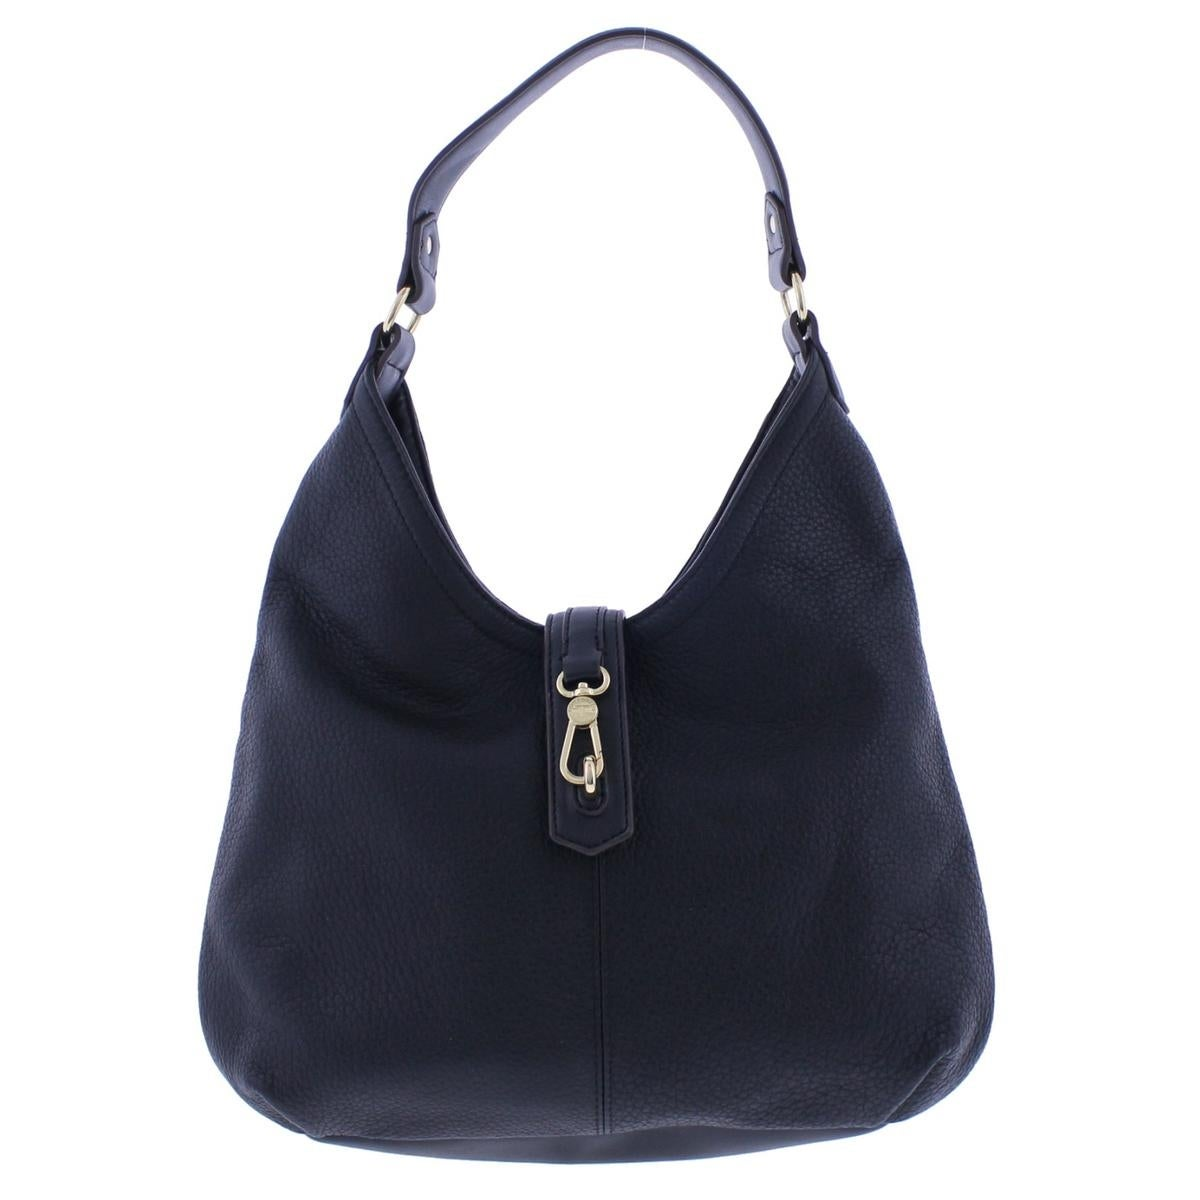 Tignanello Womens Hobo Handbag Leather Pebbled Large